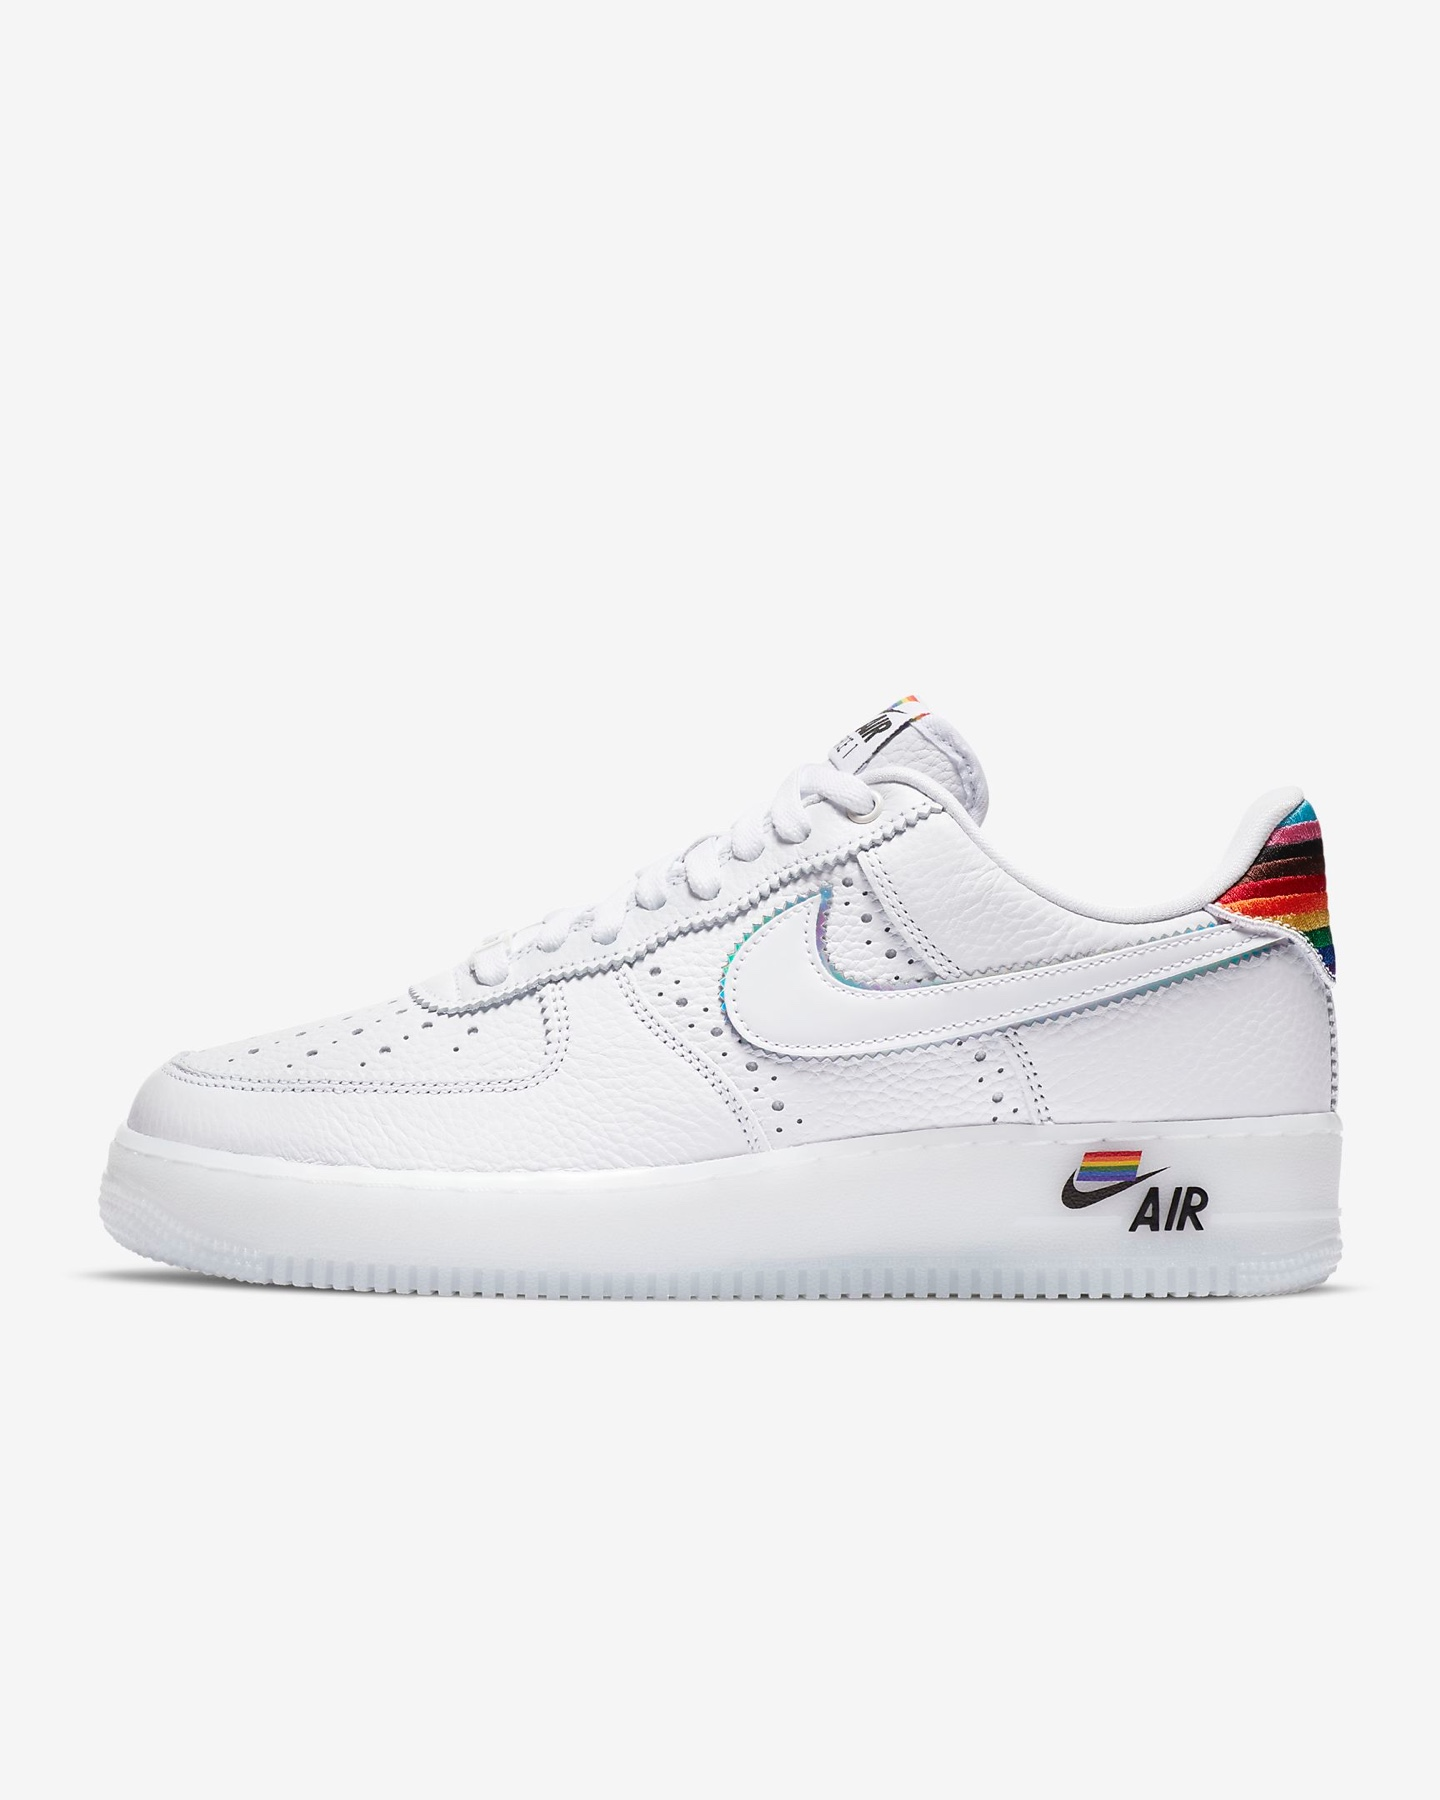 Nike Air Foce 1 BETRUE